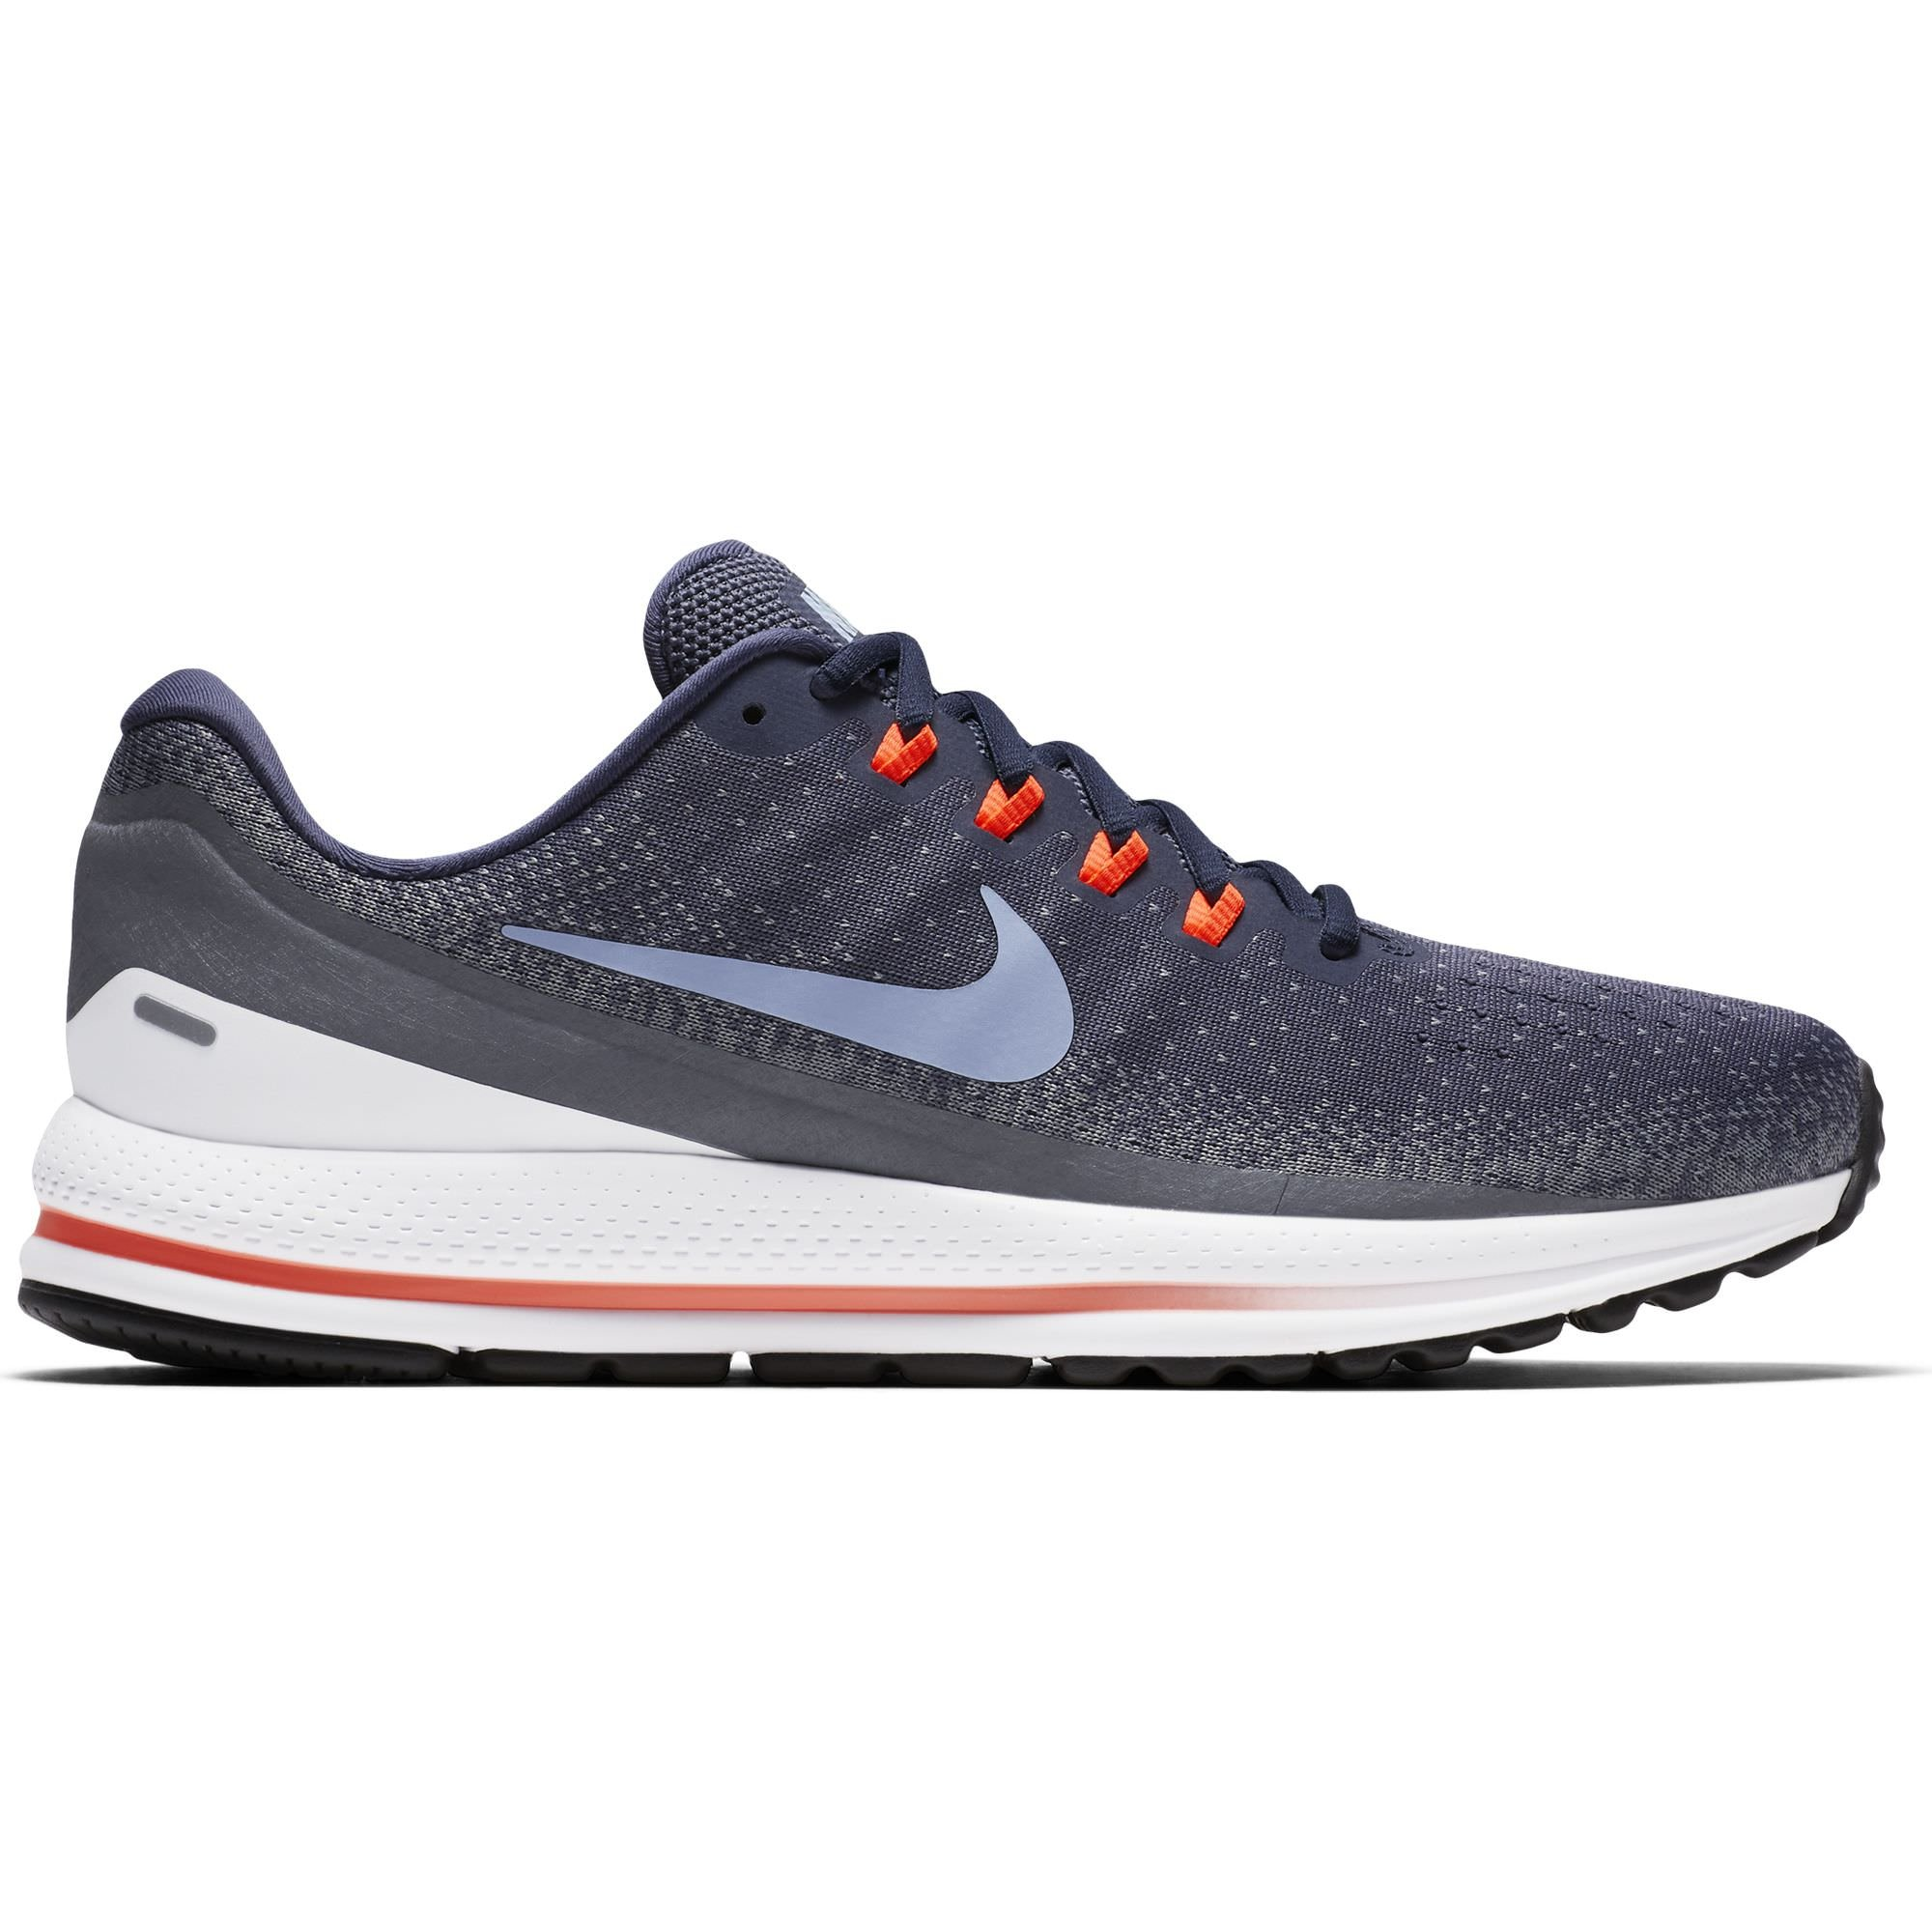 Galleon - NIKE Men s Air Zoom Vomero 13 Running Shoe Thunder Blue Cirrus  Blue Cool Grey Size 11 M US 4597faf0f